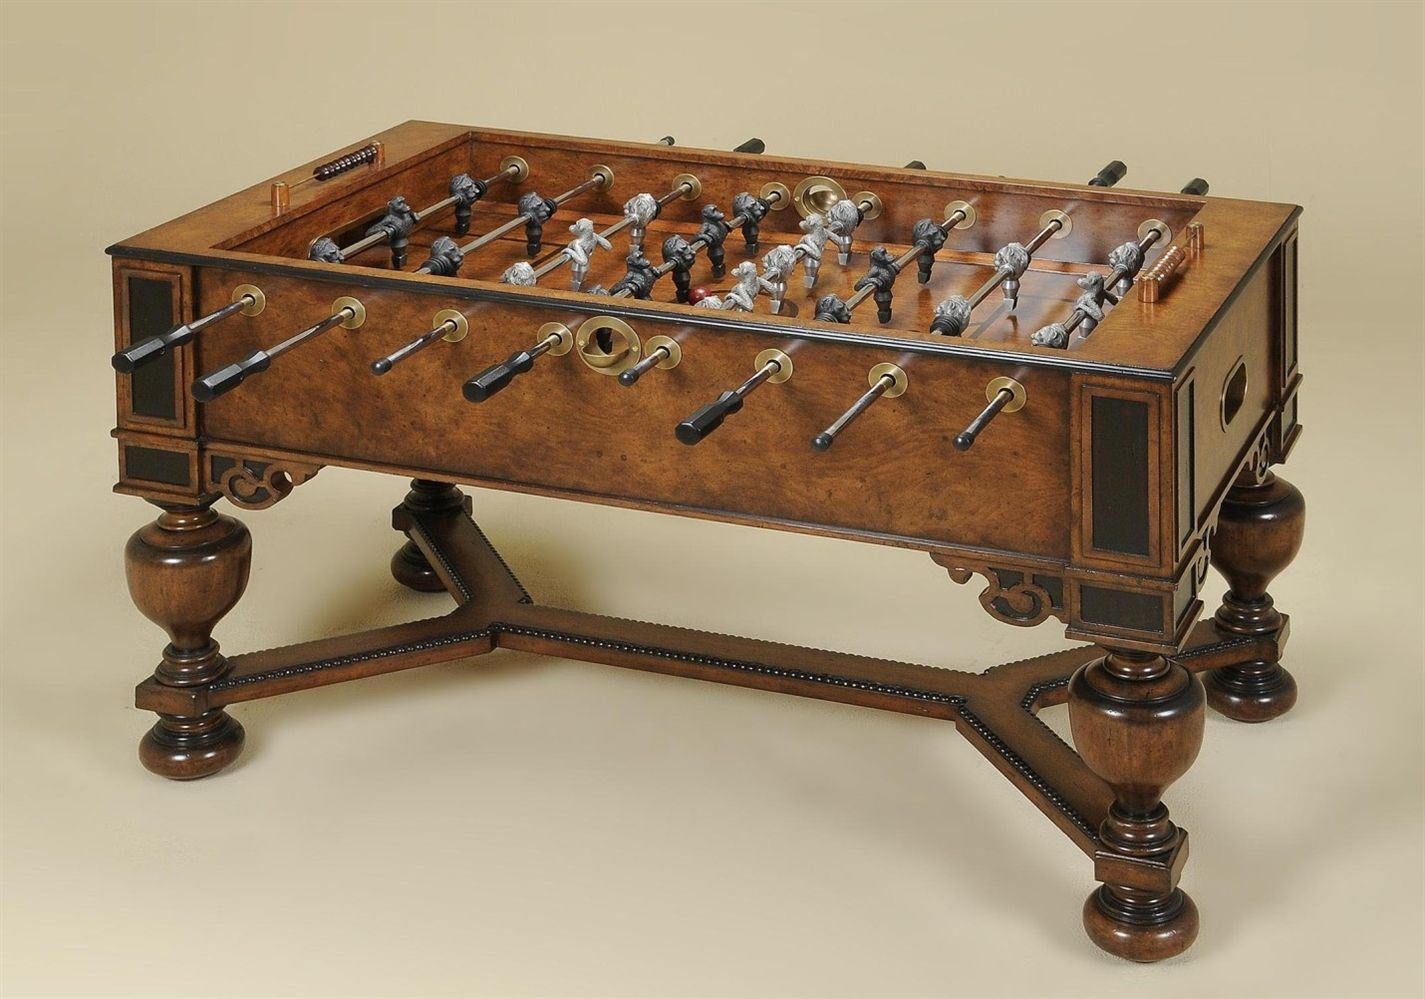 Maitland smith maitland smith 3130 160 foosball table game table maitland smith maitland smith 3130 160 foosball table game table geotapseo Image collections